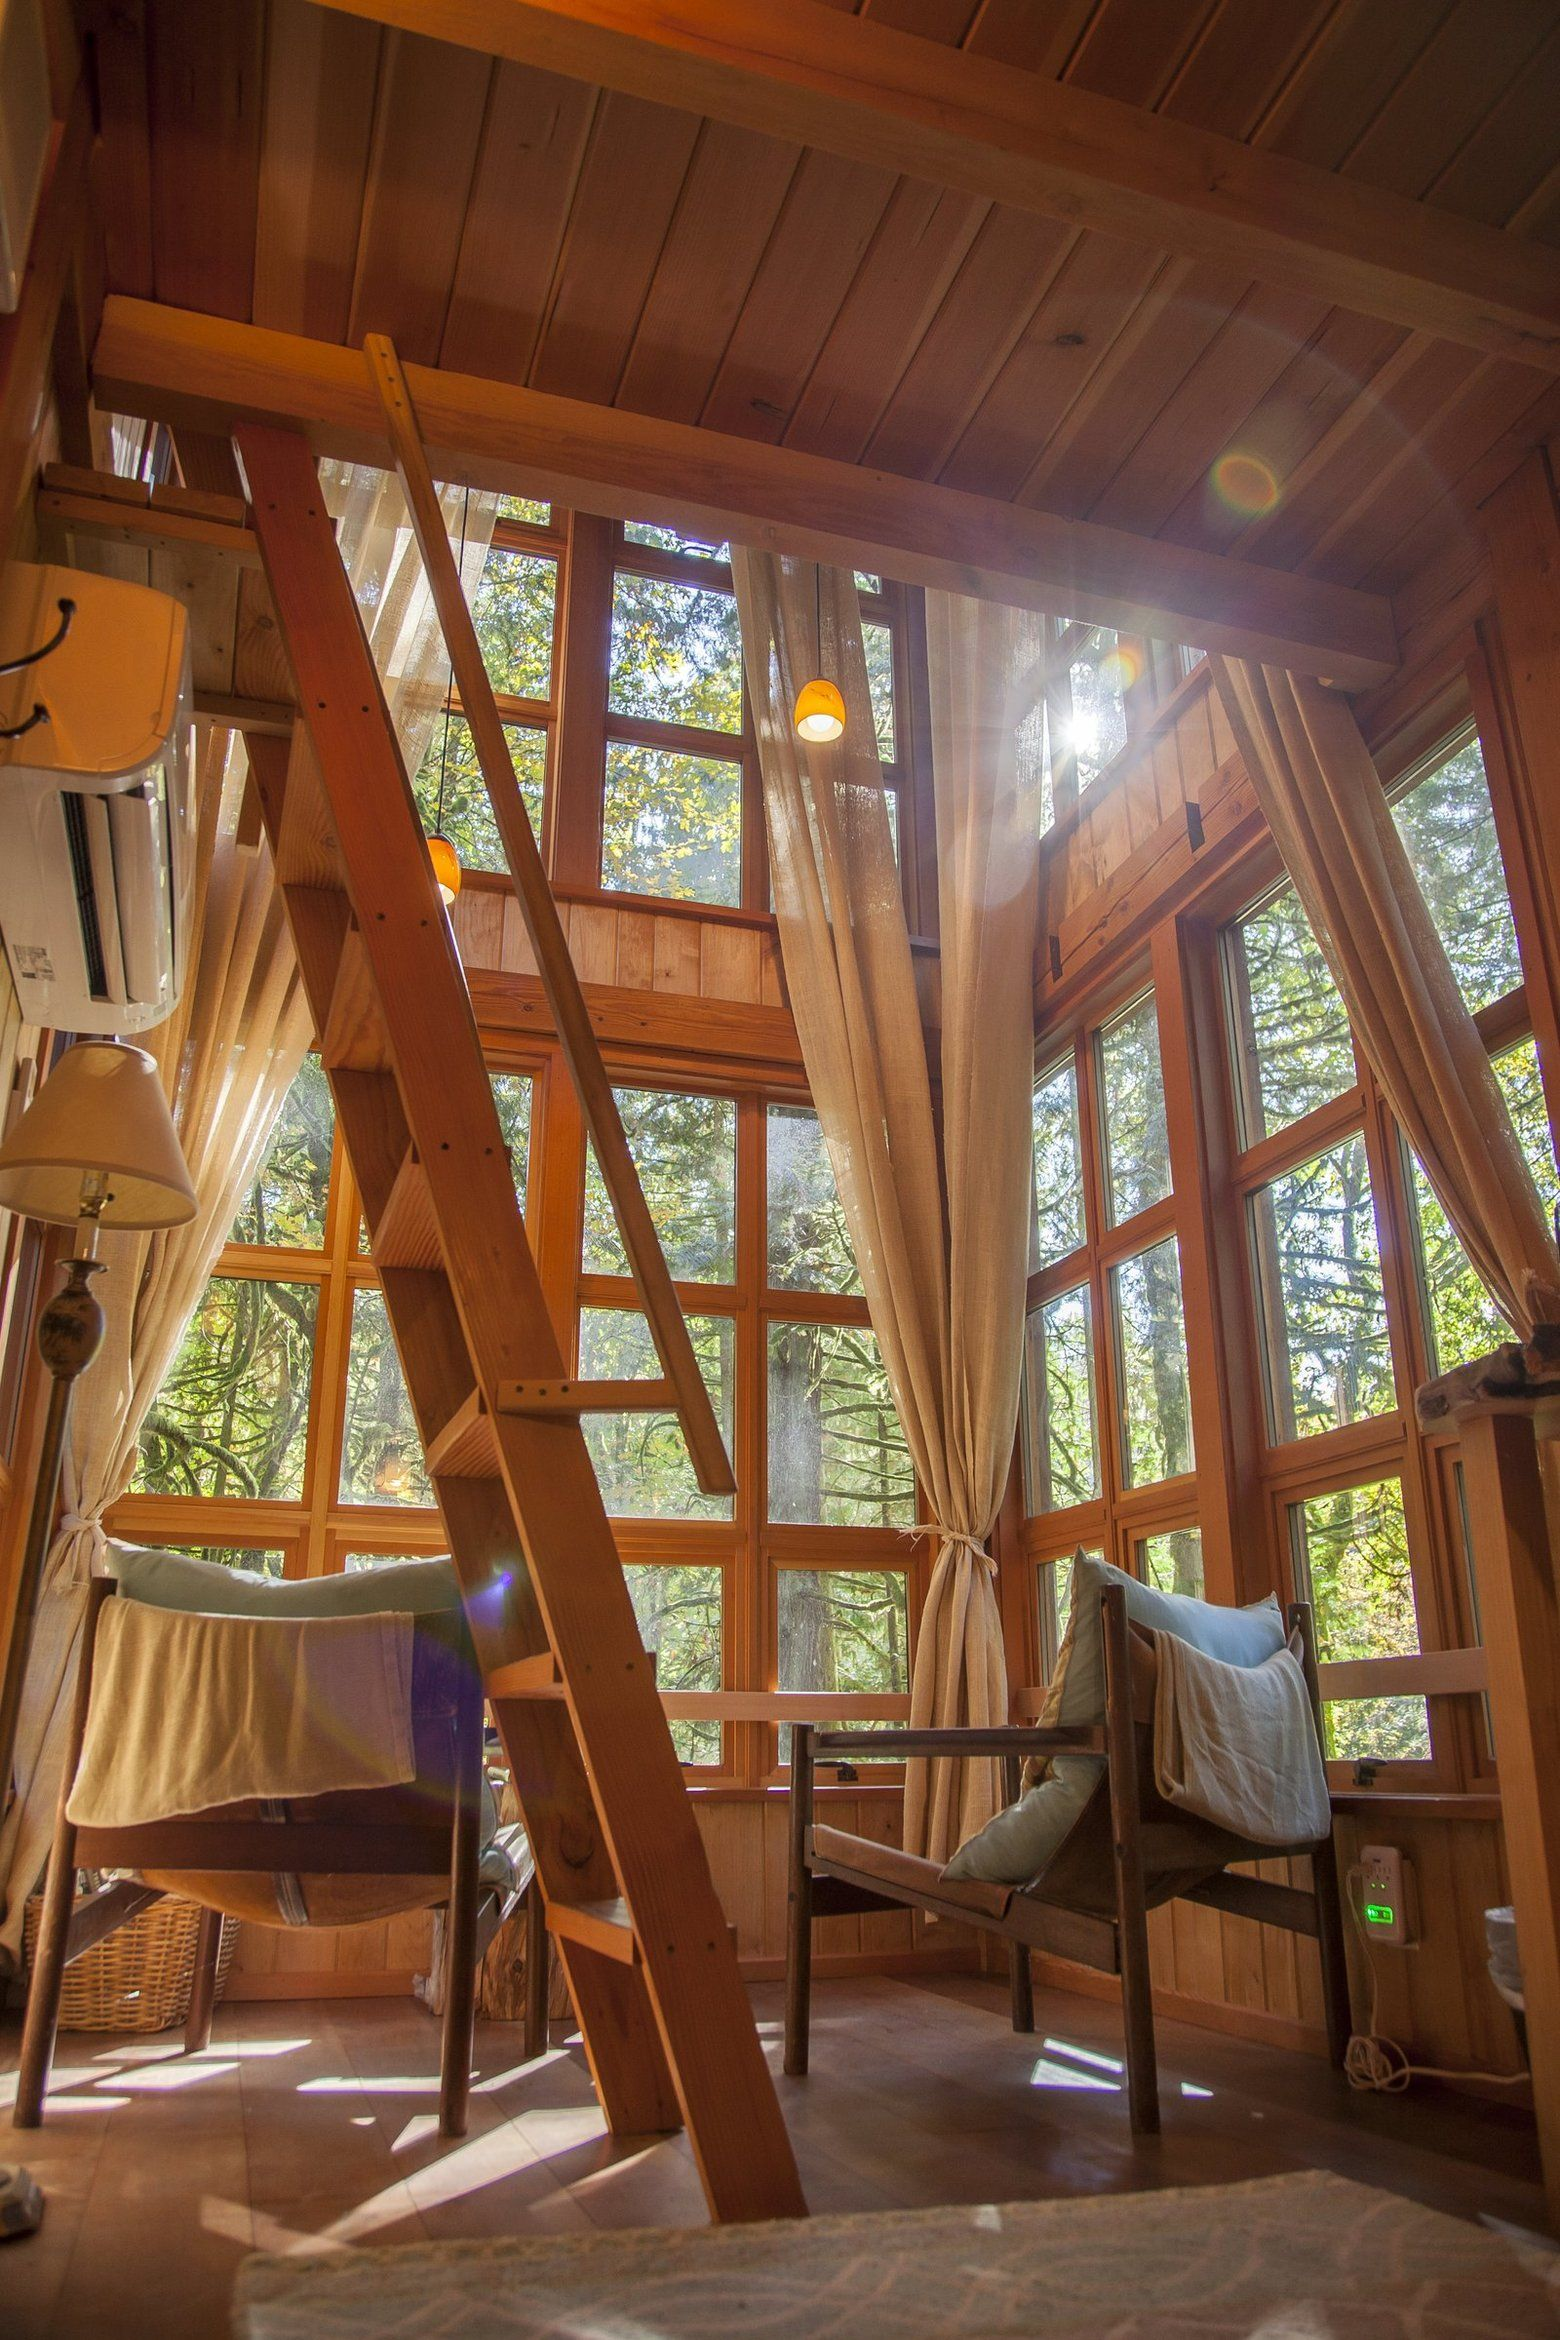 Not for kids At TreeHouse Point adults can relax and unwind amid the branches